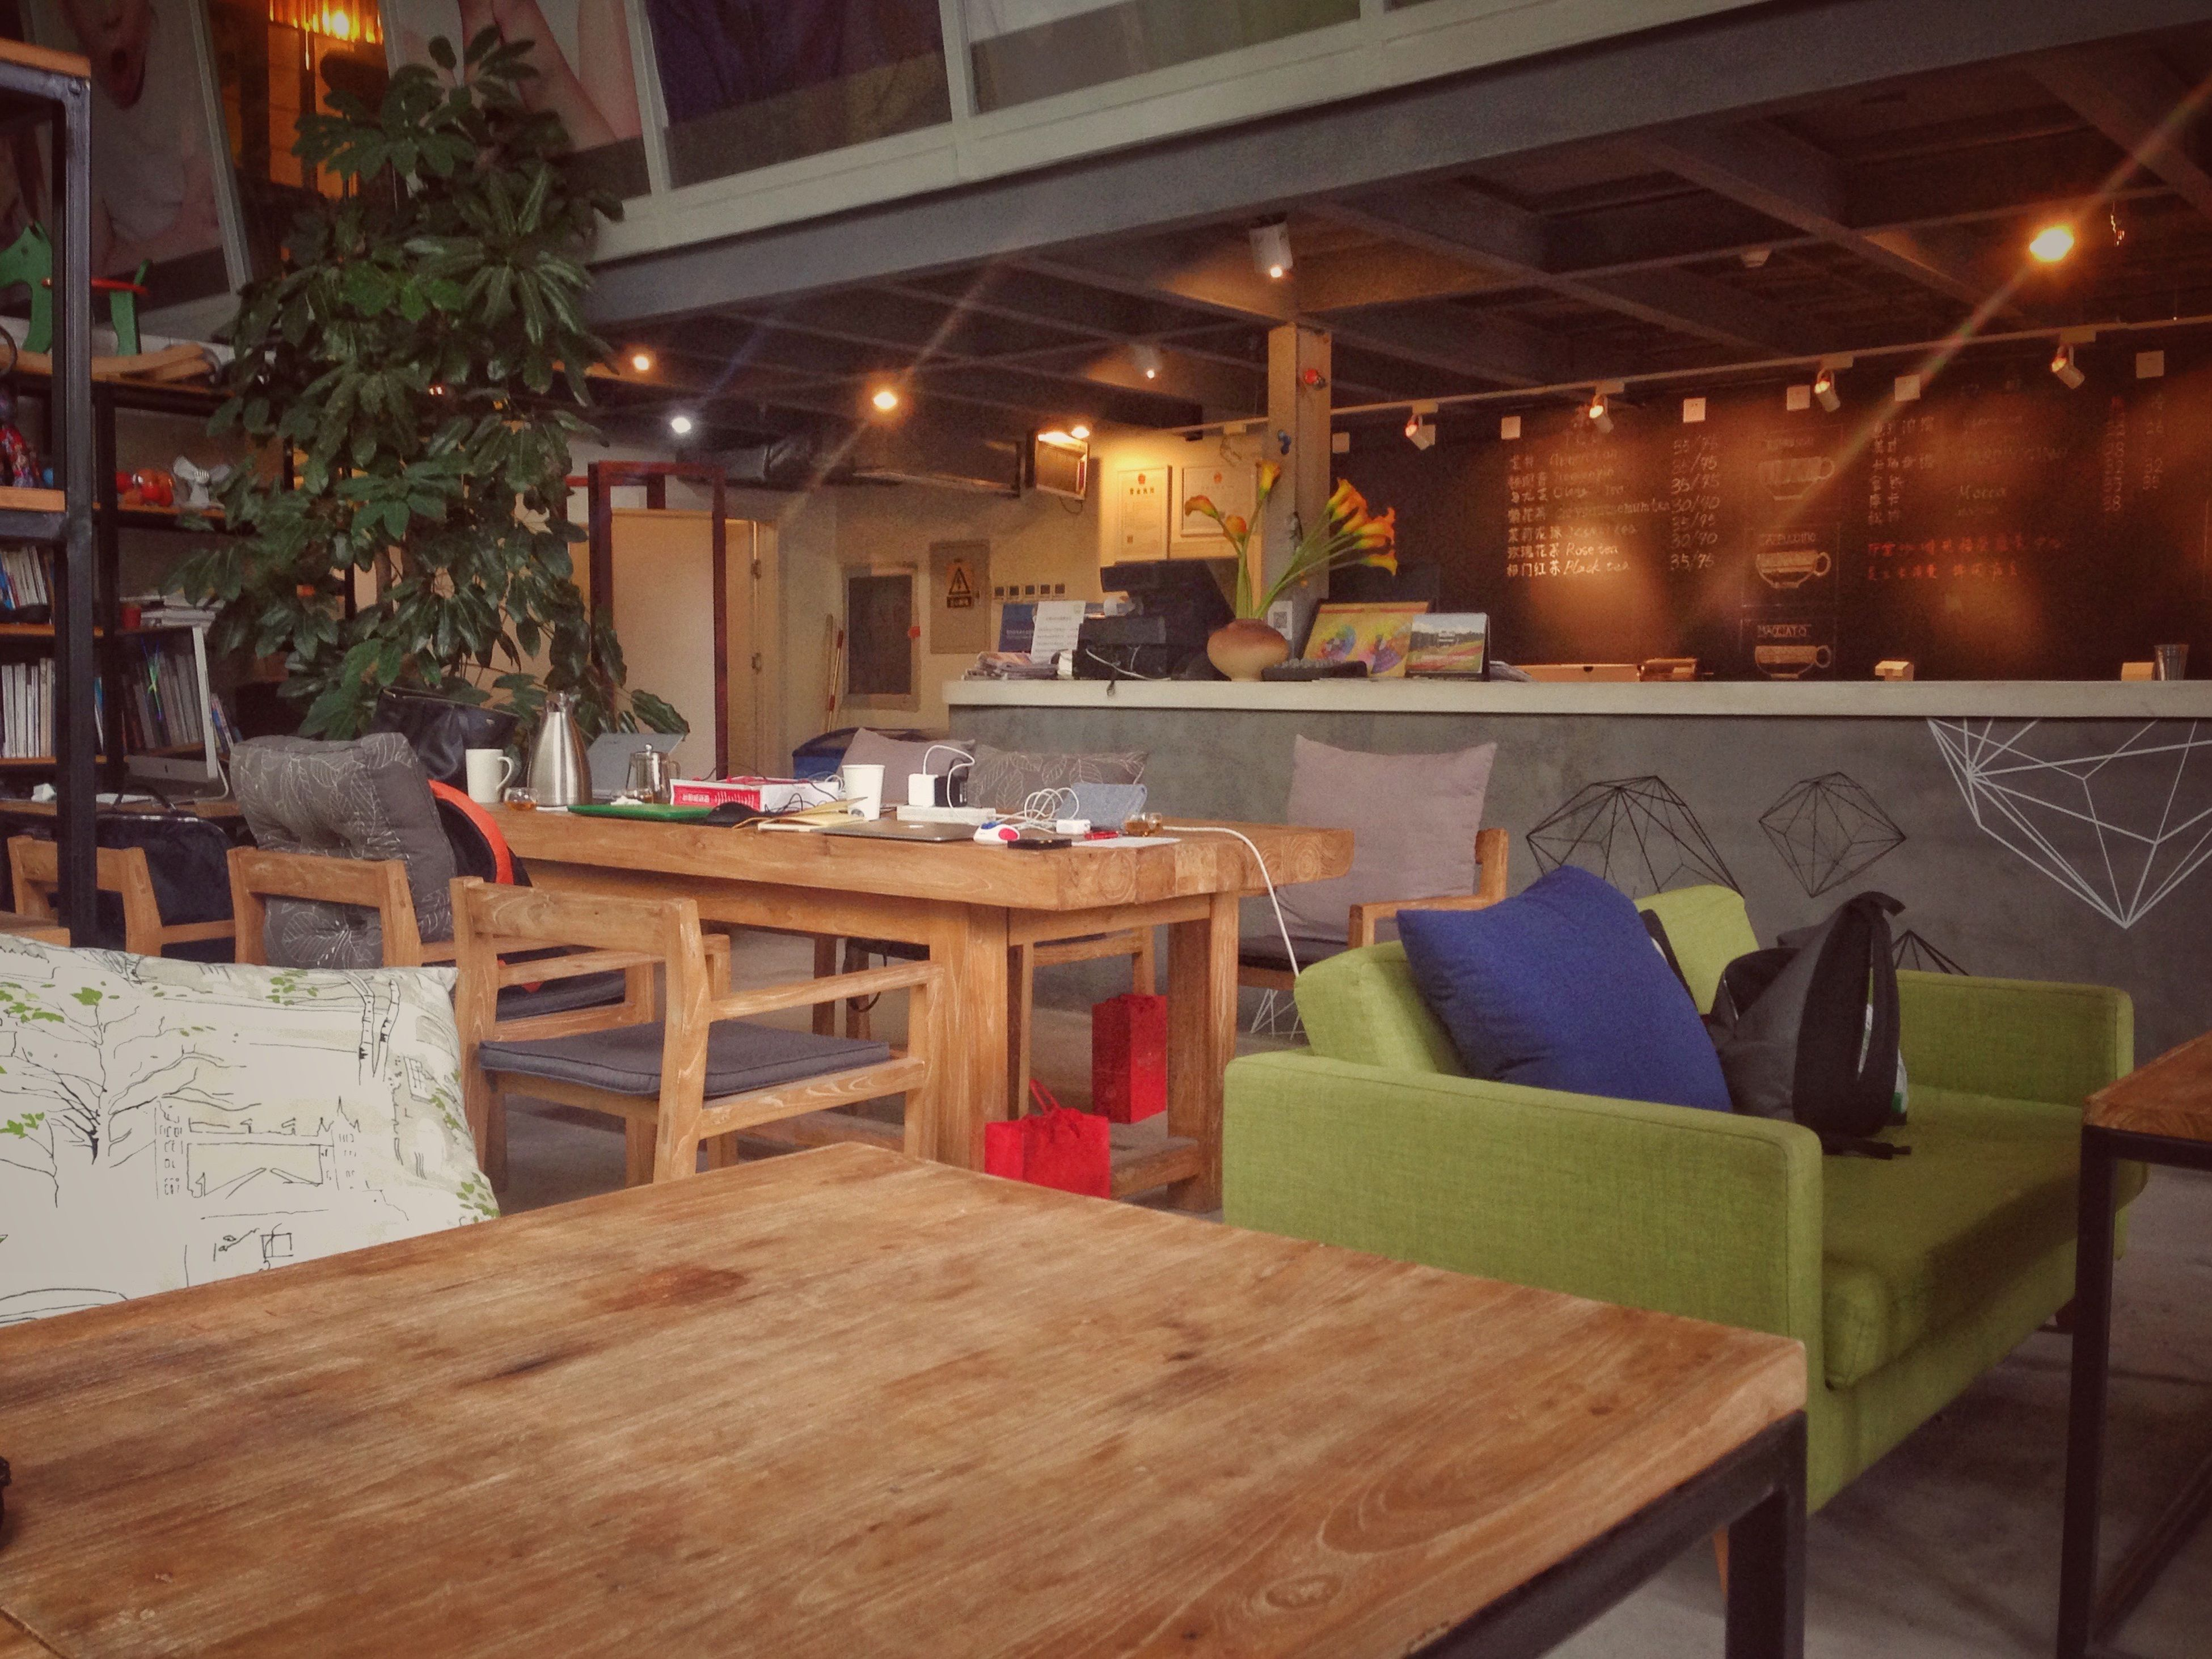 restaurant, absence, wood - material, empty, illuminated, no people, furniture, arrangement